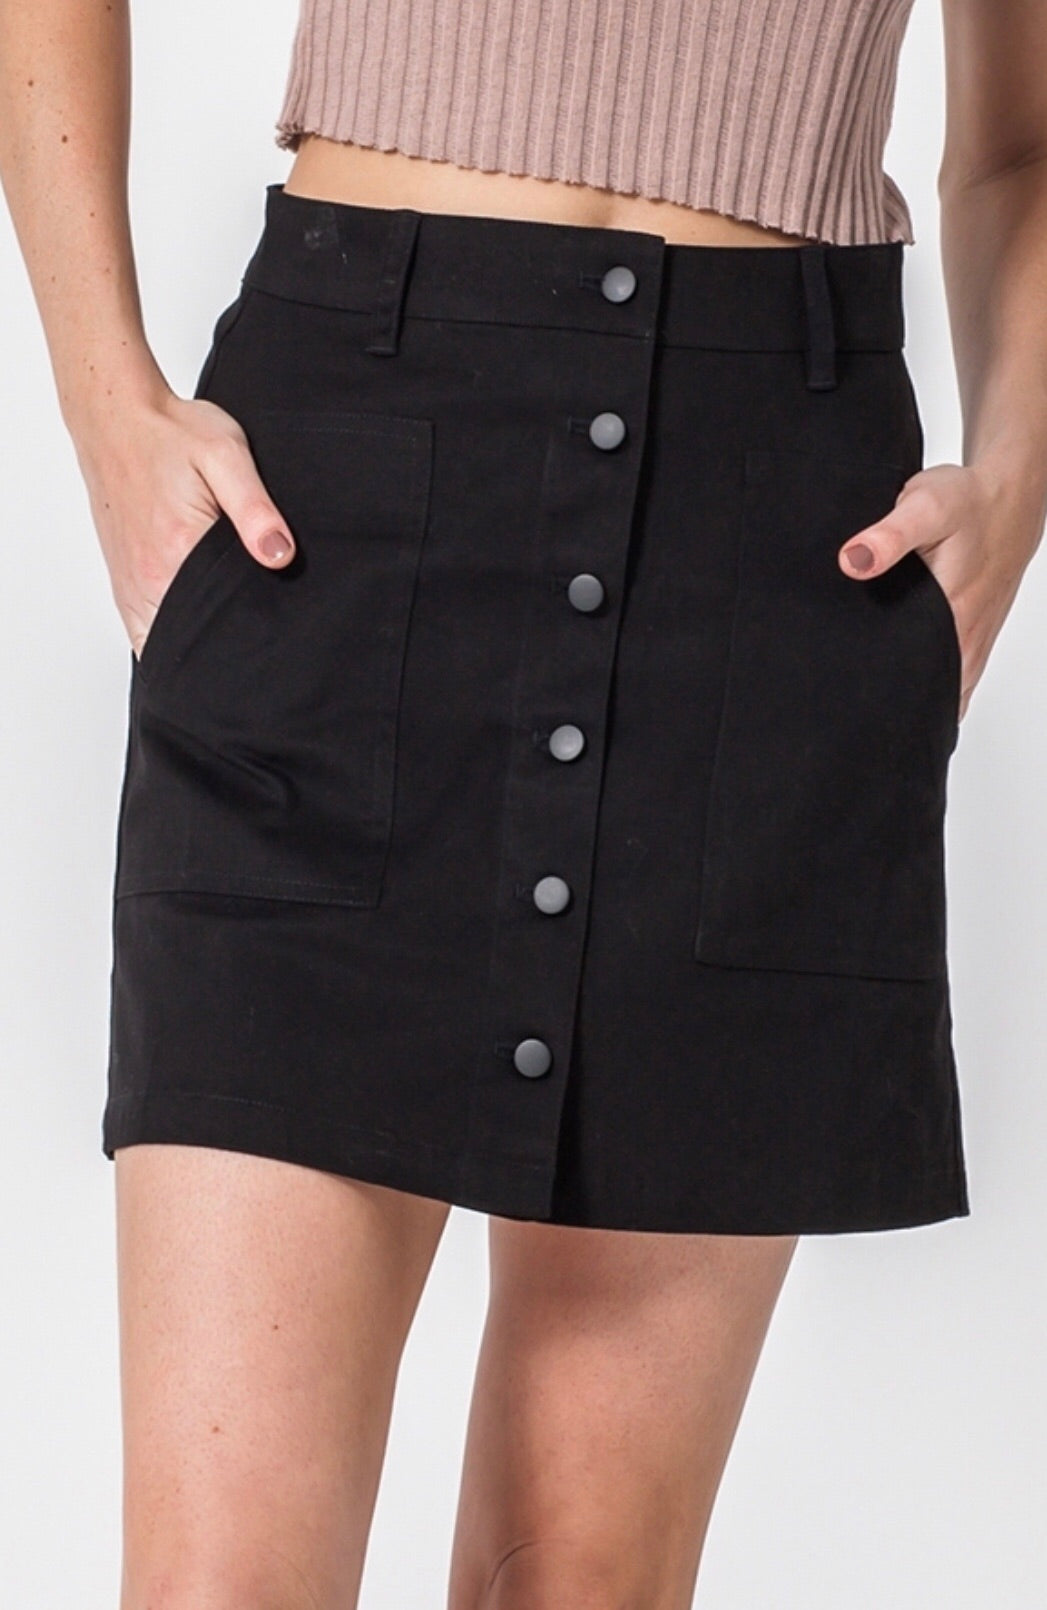 BUTTON UP BLK SKIRT WITH POCKETS